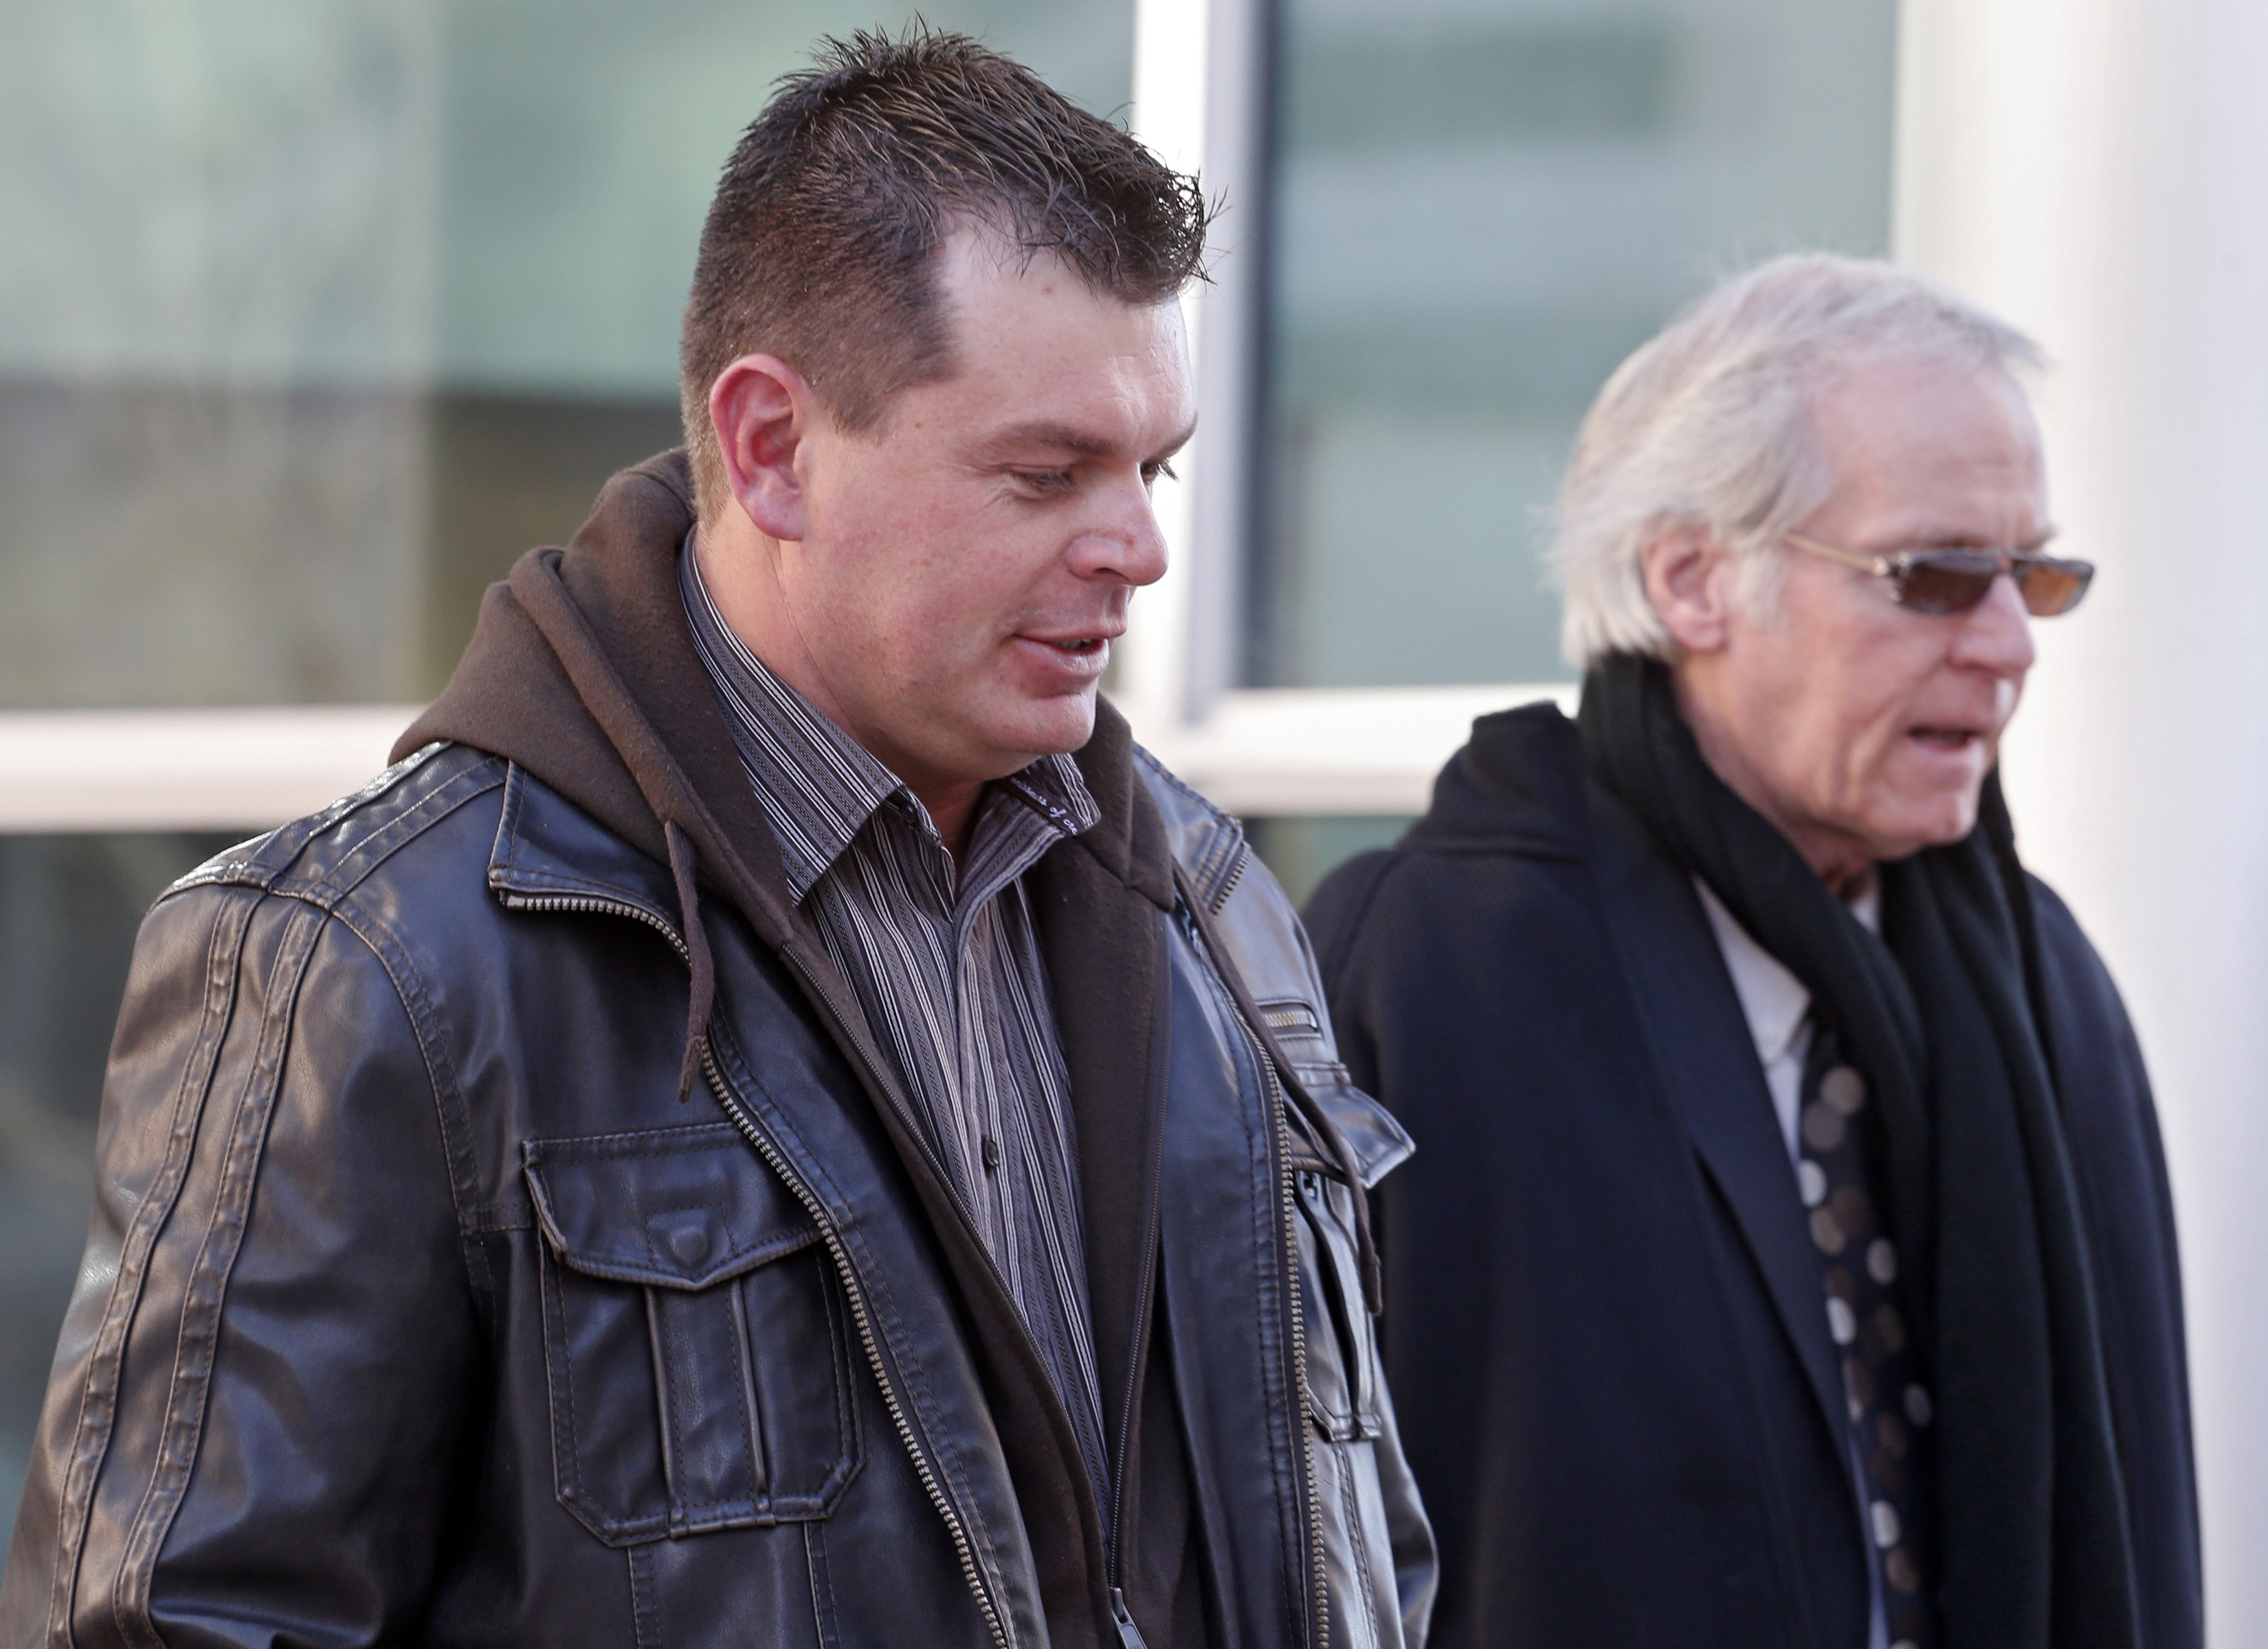 Eric Jensen, left, leaves the federal courthouse in Denver on Jan. 28, 2014, with attorney Forrest Lewis after he and his brother Ryan were sentenced to five years of probation and six months of home detention. The two Colorado cantaloupe farmers, who pleaded guilty to misdemeanor charges stemming from a deadly listeria outbreak in 2011, were also ordered to each pay $150,000 in restitution and perform 100 hours of community service